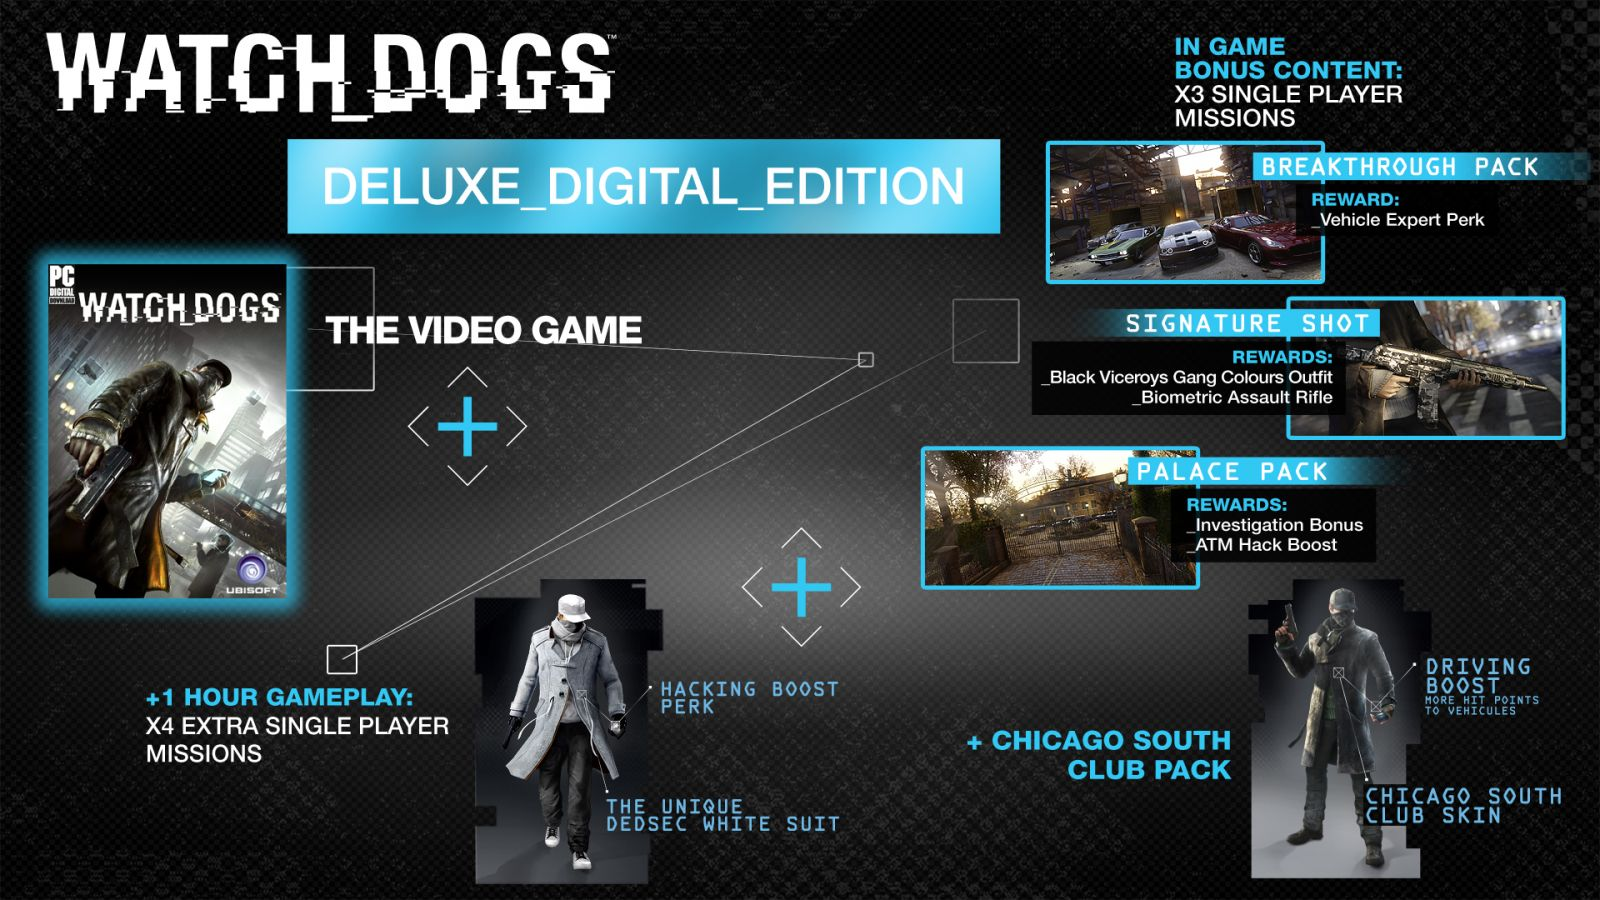 What Do You Get In Watch Dogs Special Edition